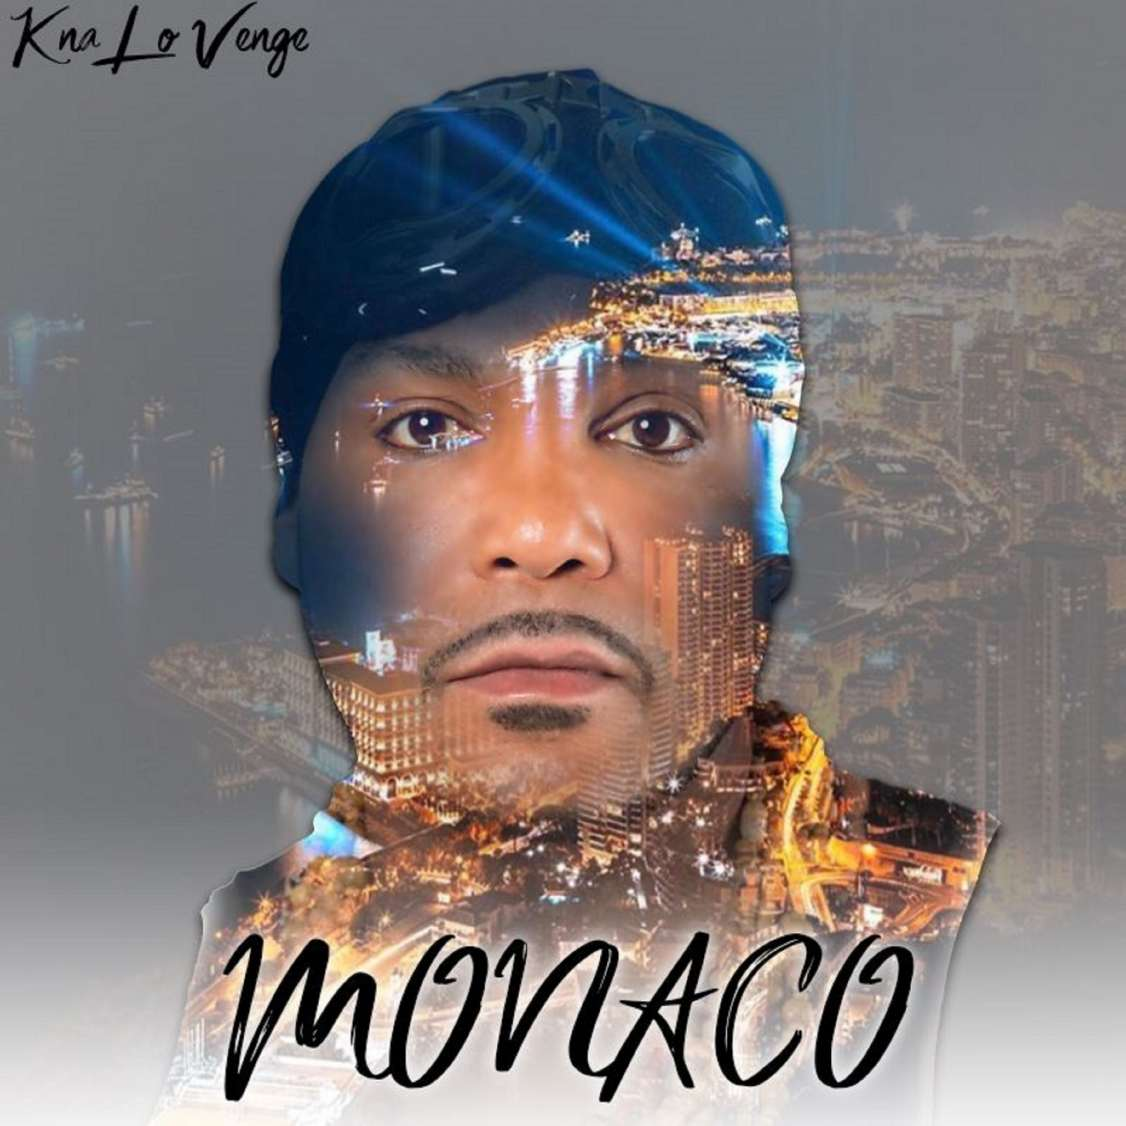 Kna Lo Venge - Monaco Official Album Cover